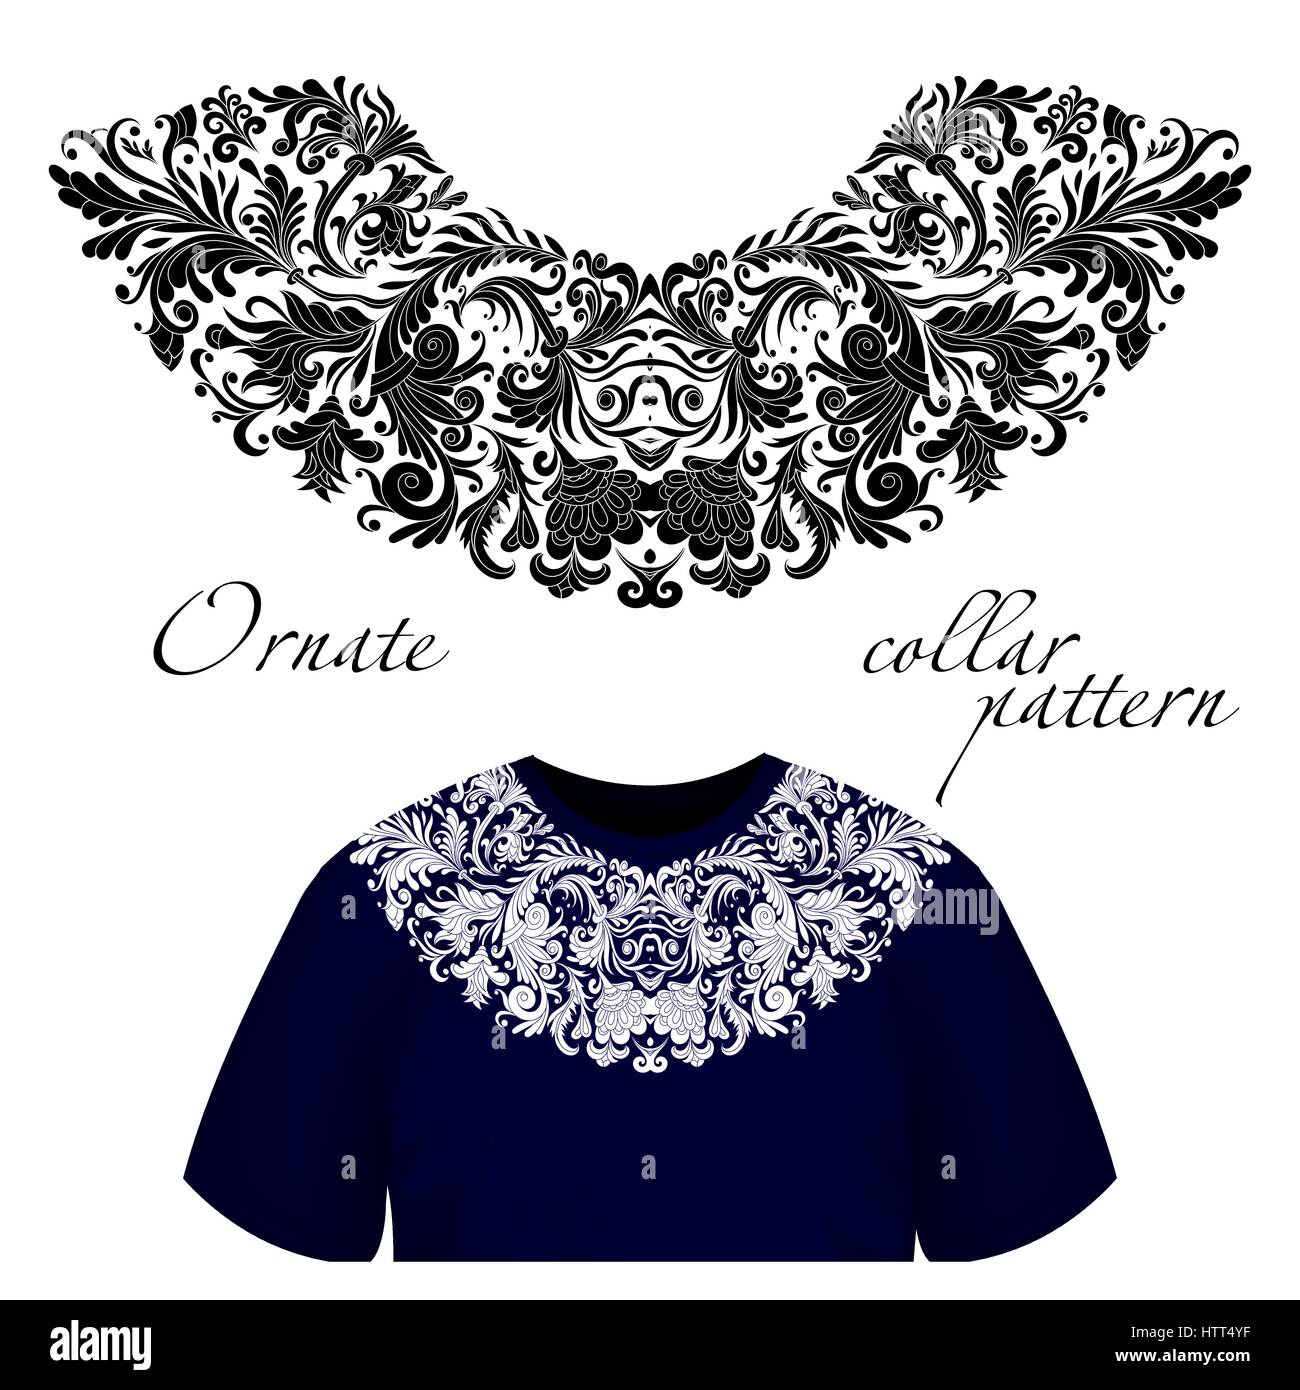 b2b57abff Vector design for collar shirts, shirts, blouses, T-shirt. One colors  ethnic flowers neck. Paisley decorative border